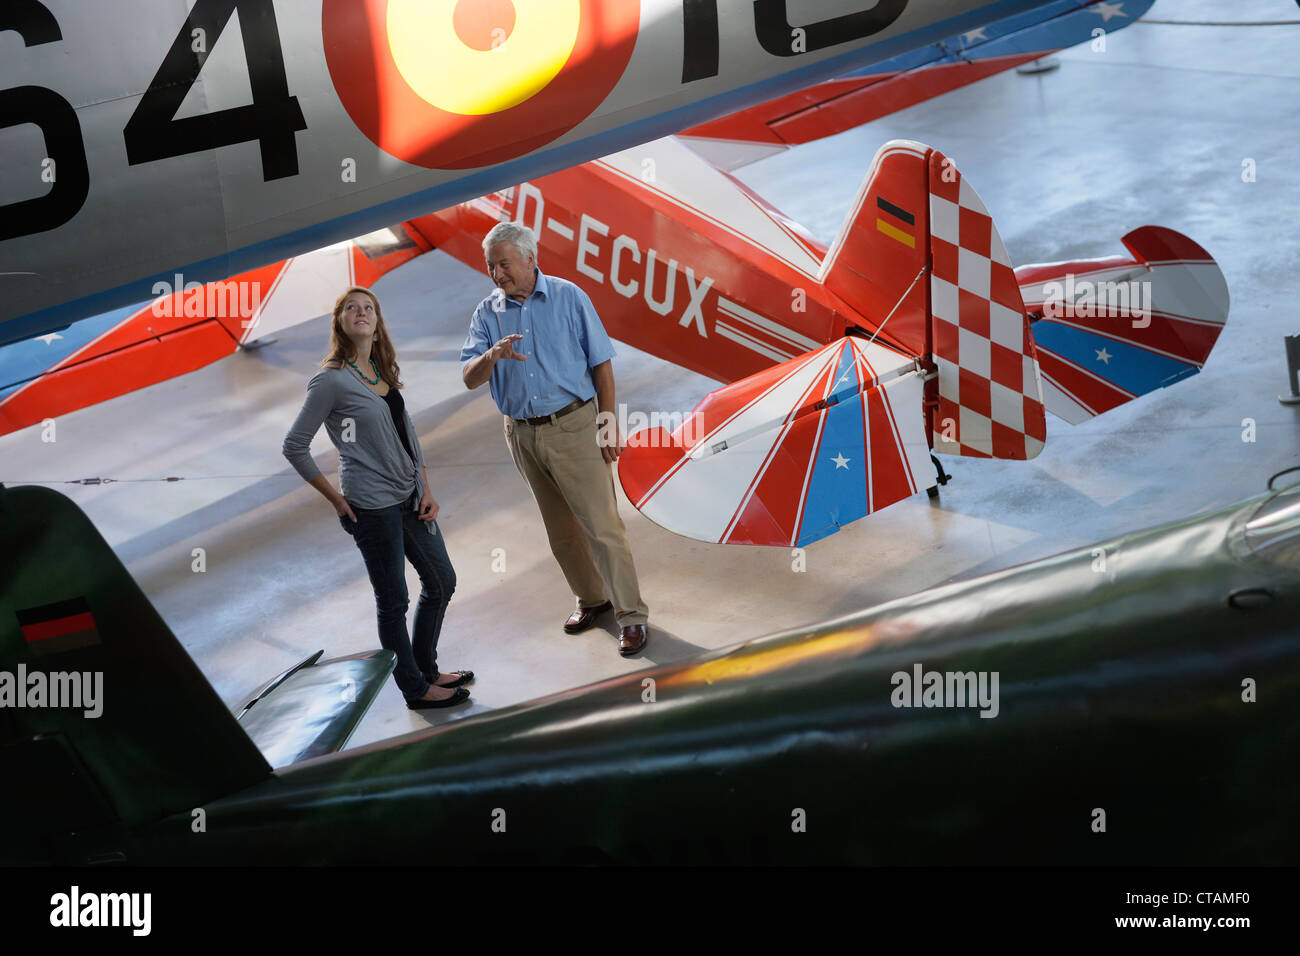 Visitors in the Aviation Museum, Deutsches Museum, German Museum, Oberschleissheim, Munich, Bavaria, Germany - Stock Image